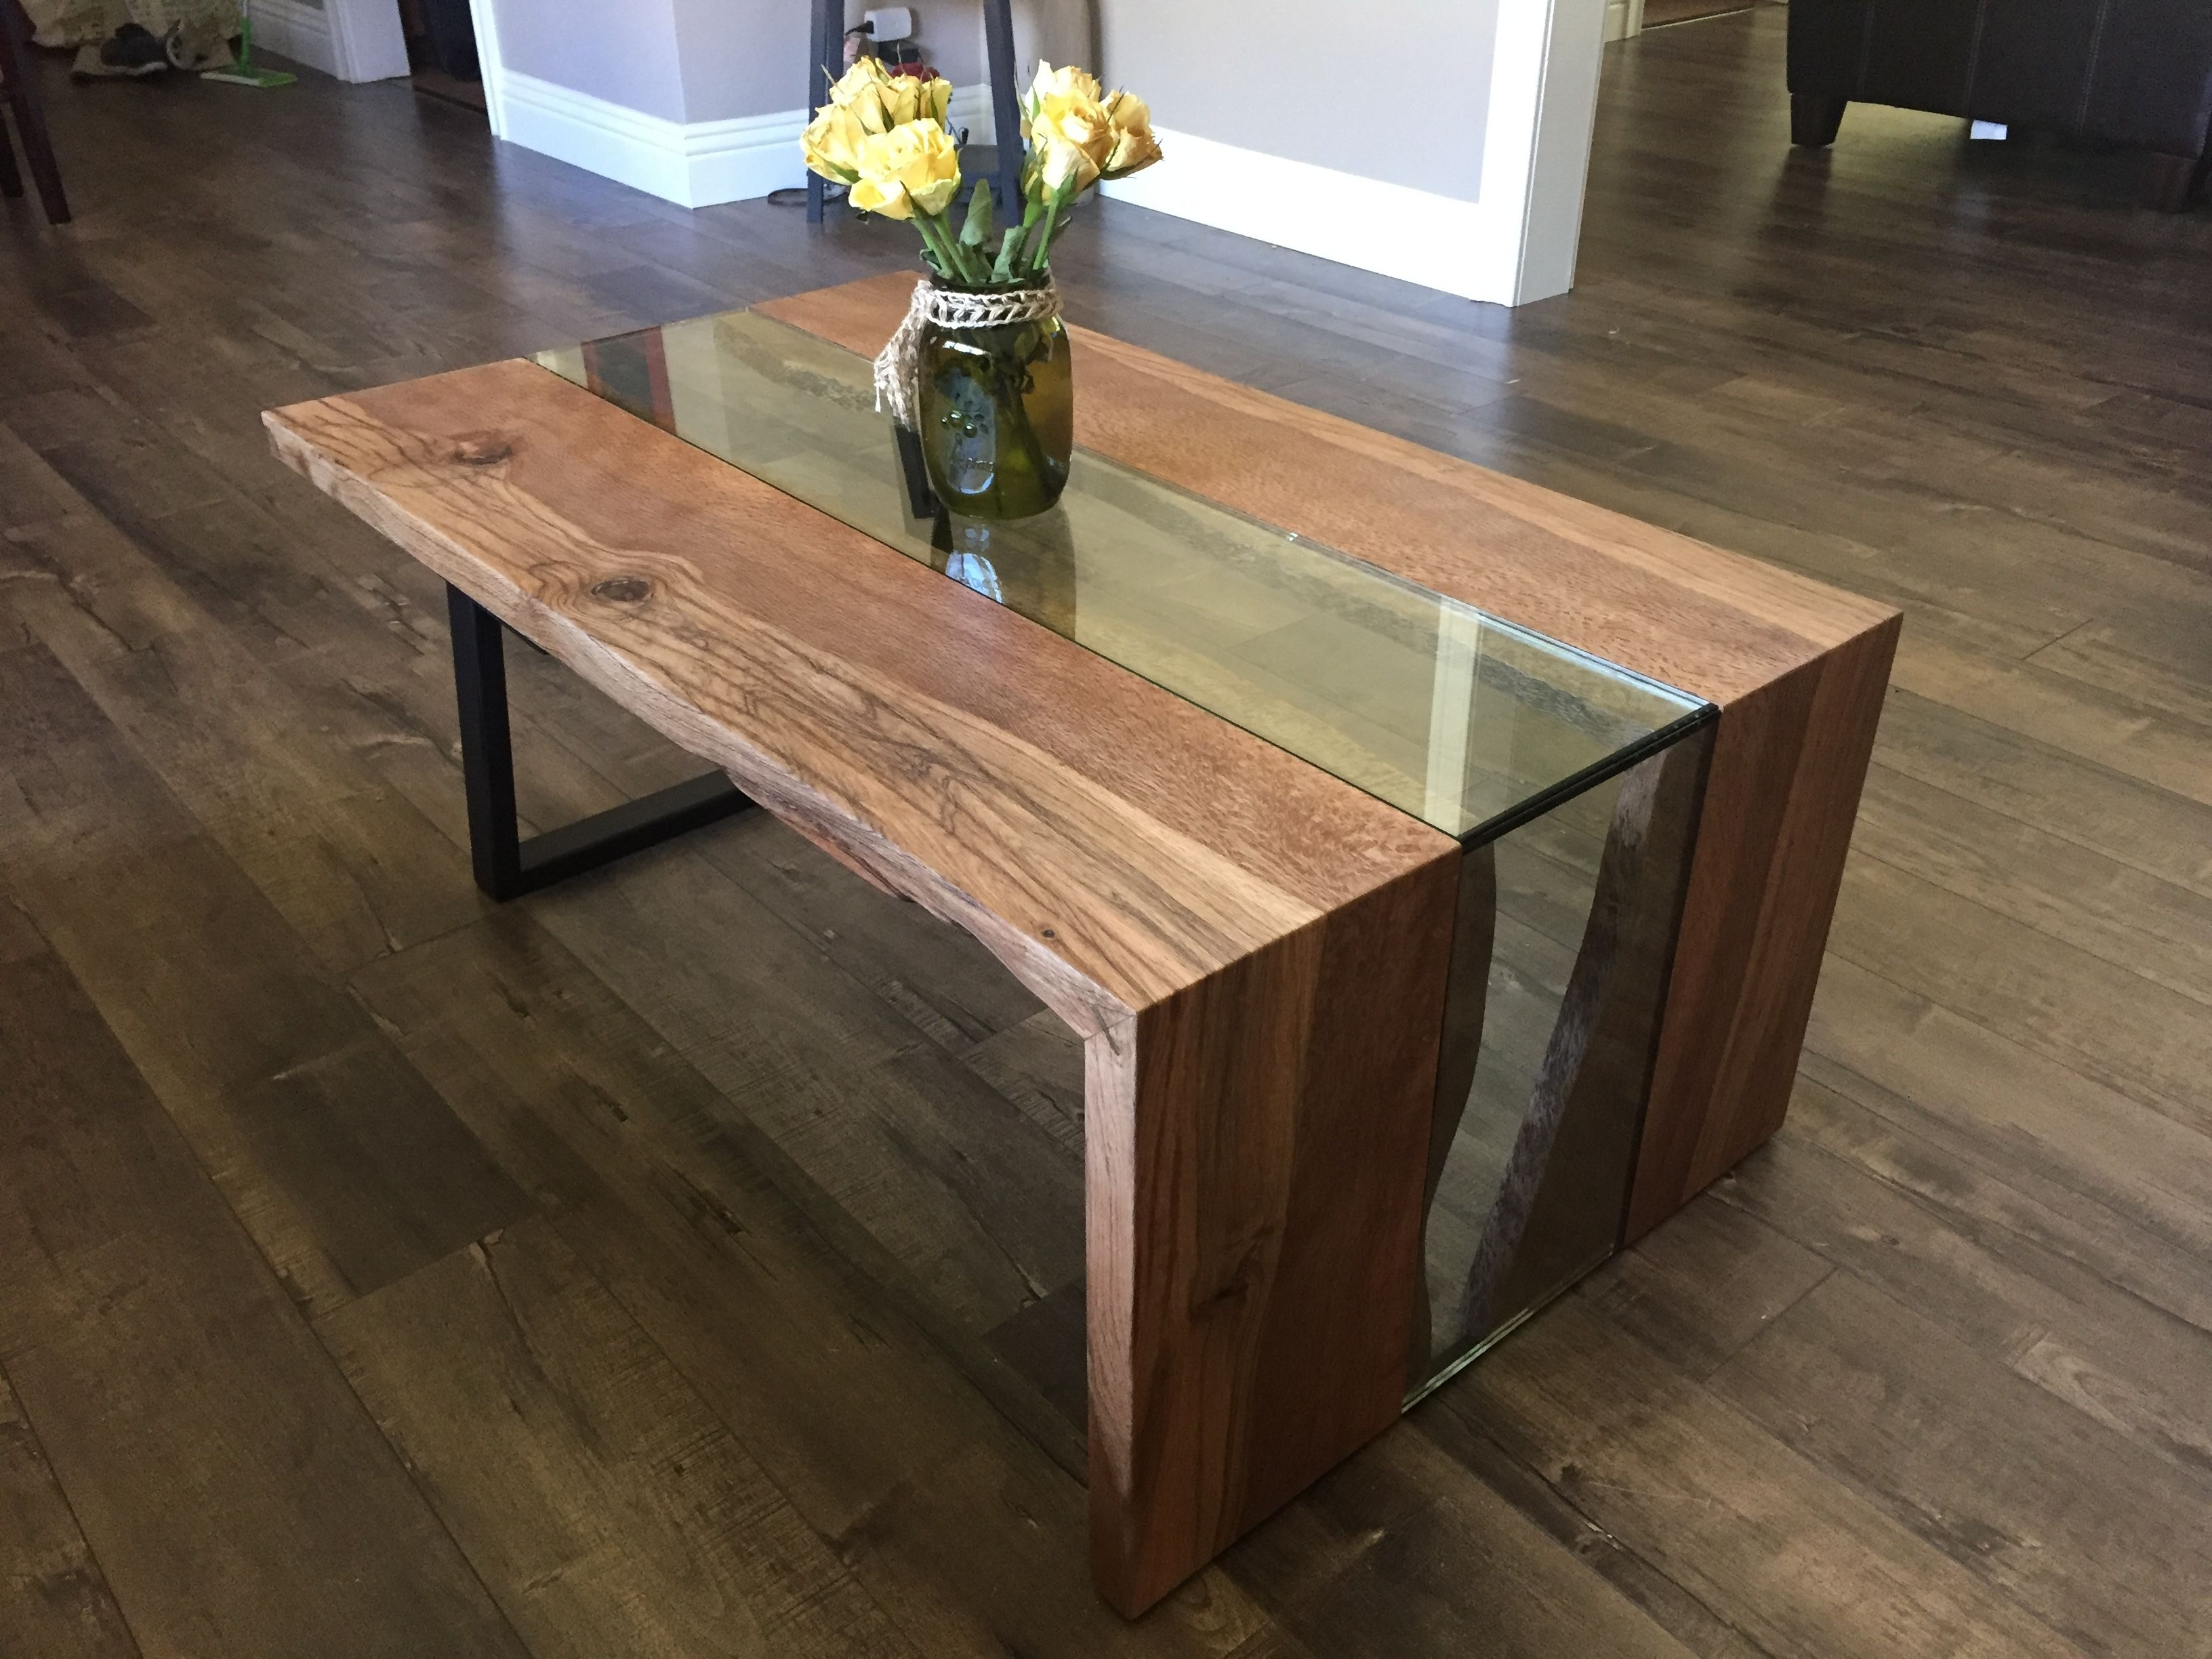 Live Edge Waterfall Coffee Table - Solid Black Oak, Steel, And Glass pertaining to Waterfall Coffee Tables (Image 17 of 30)